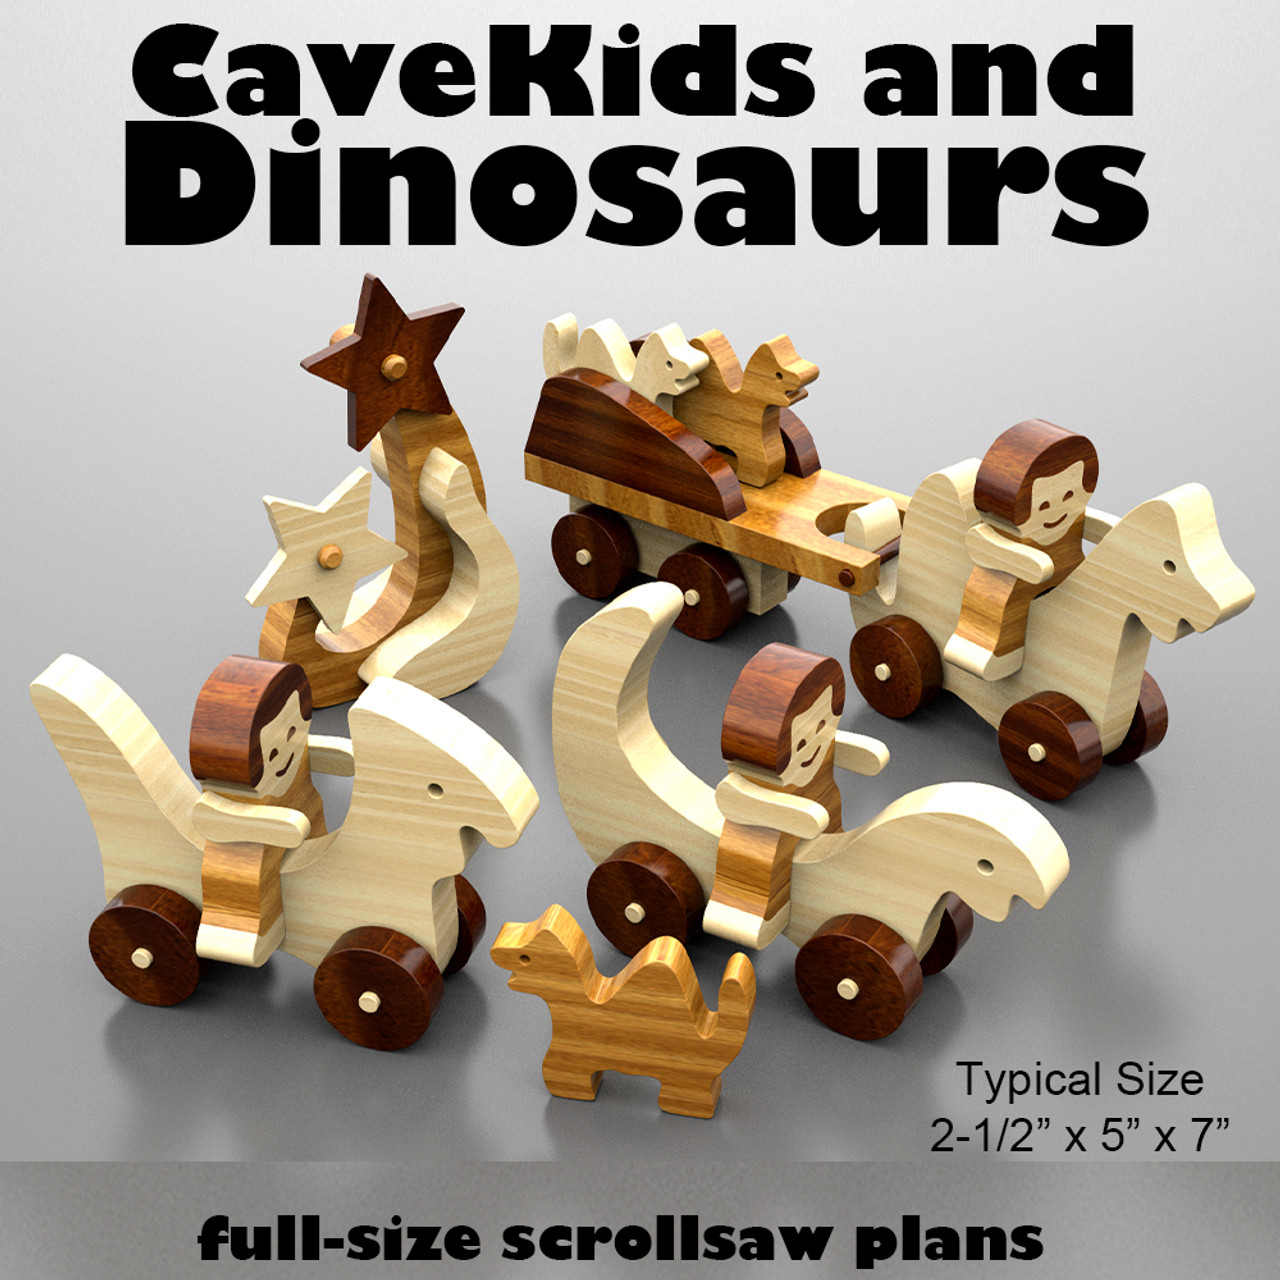 zoo carpet buddies and cavekids & dinosaurs wood toy plans (2 pdf downloads)